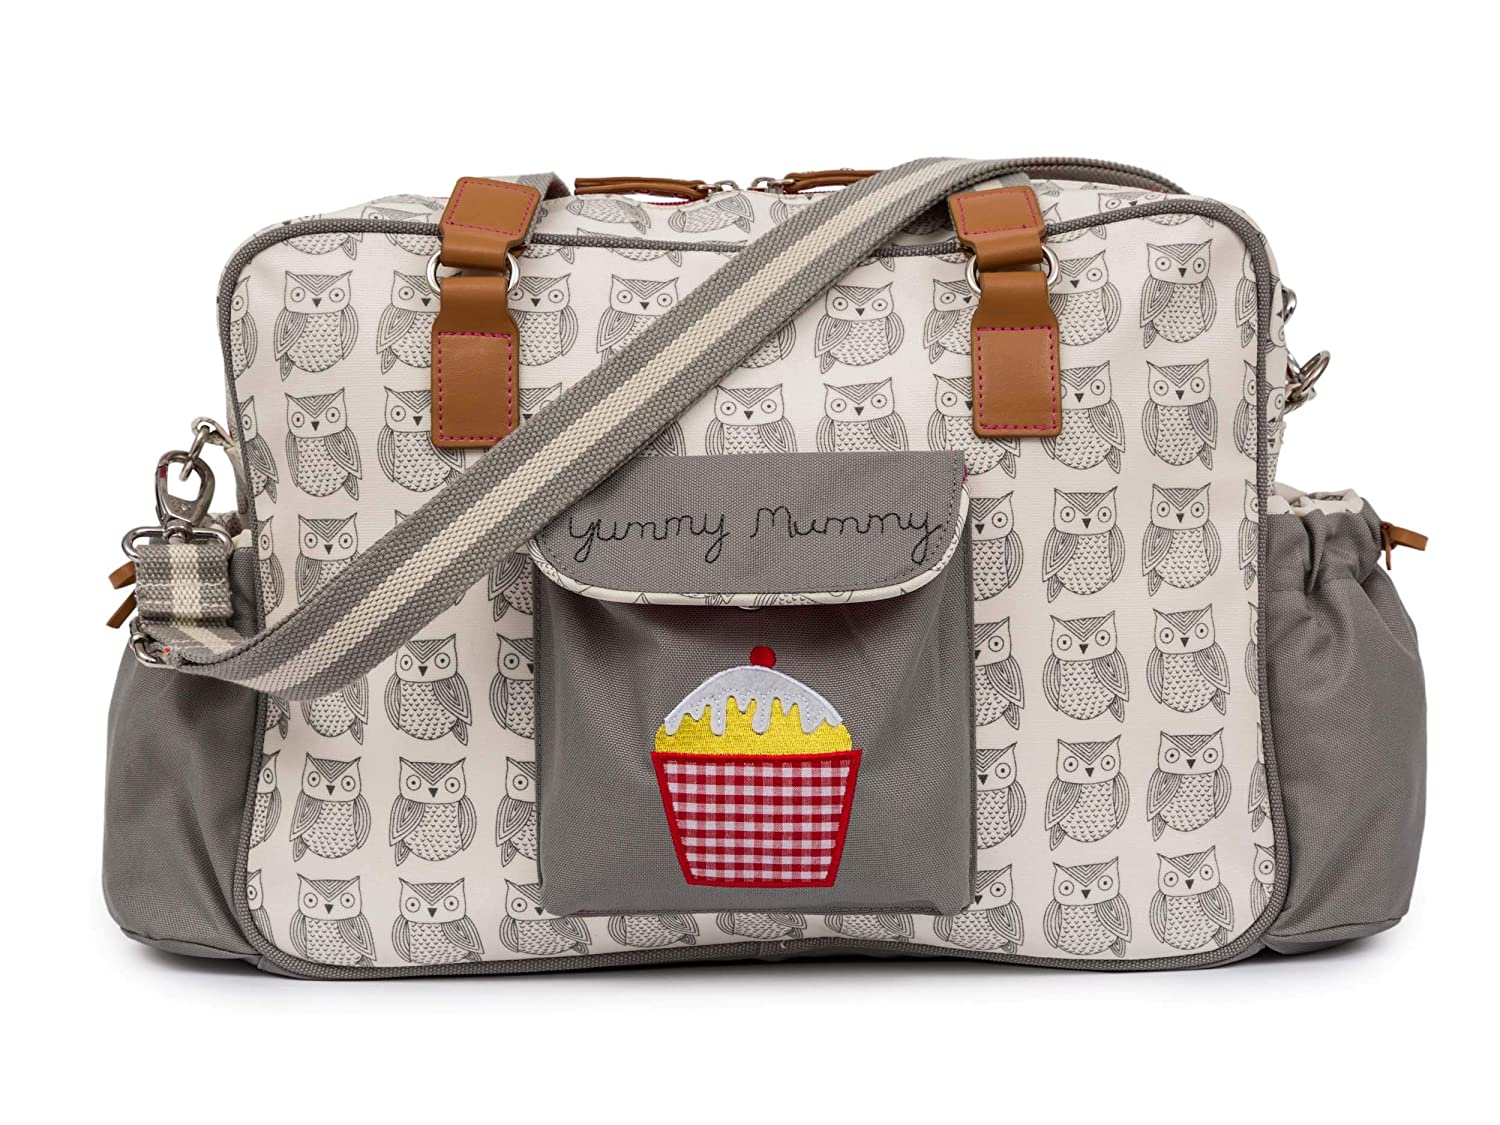 Pink Lining Yummy Mummy Baby Changing Nappy Bag - Wise Owl